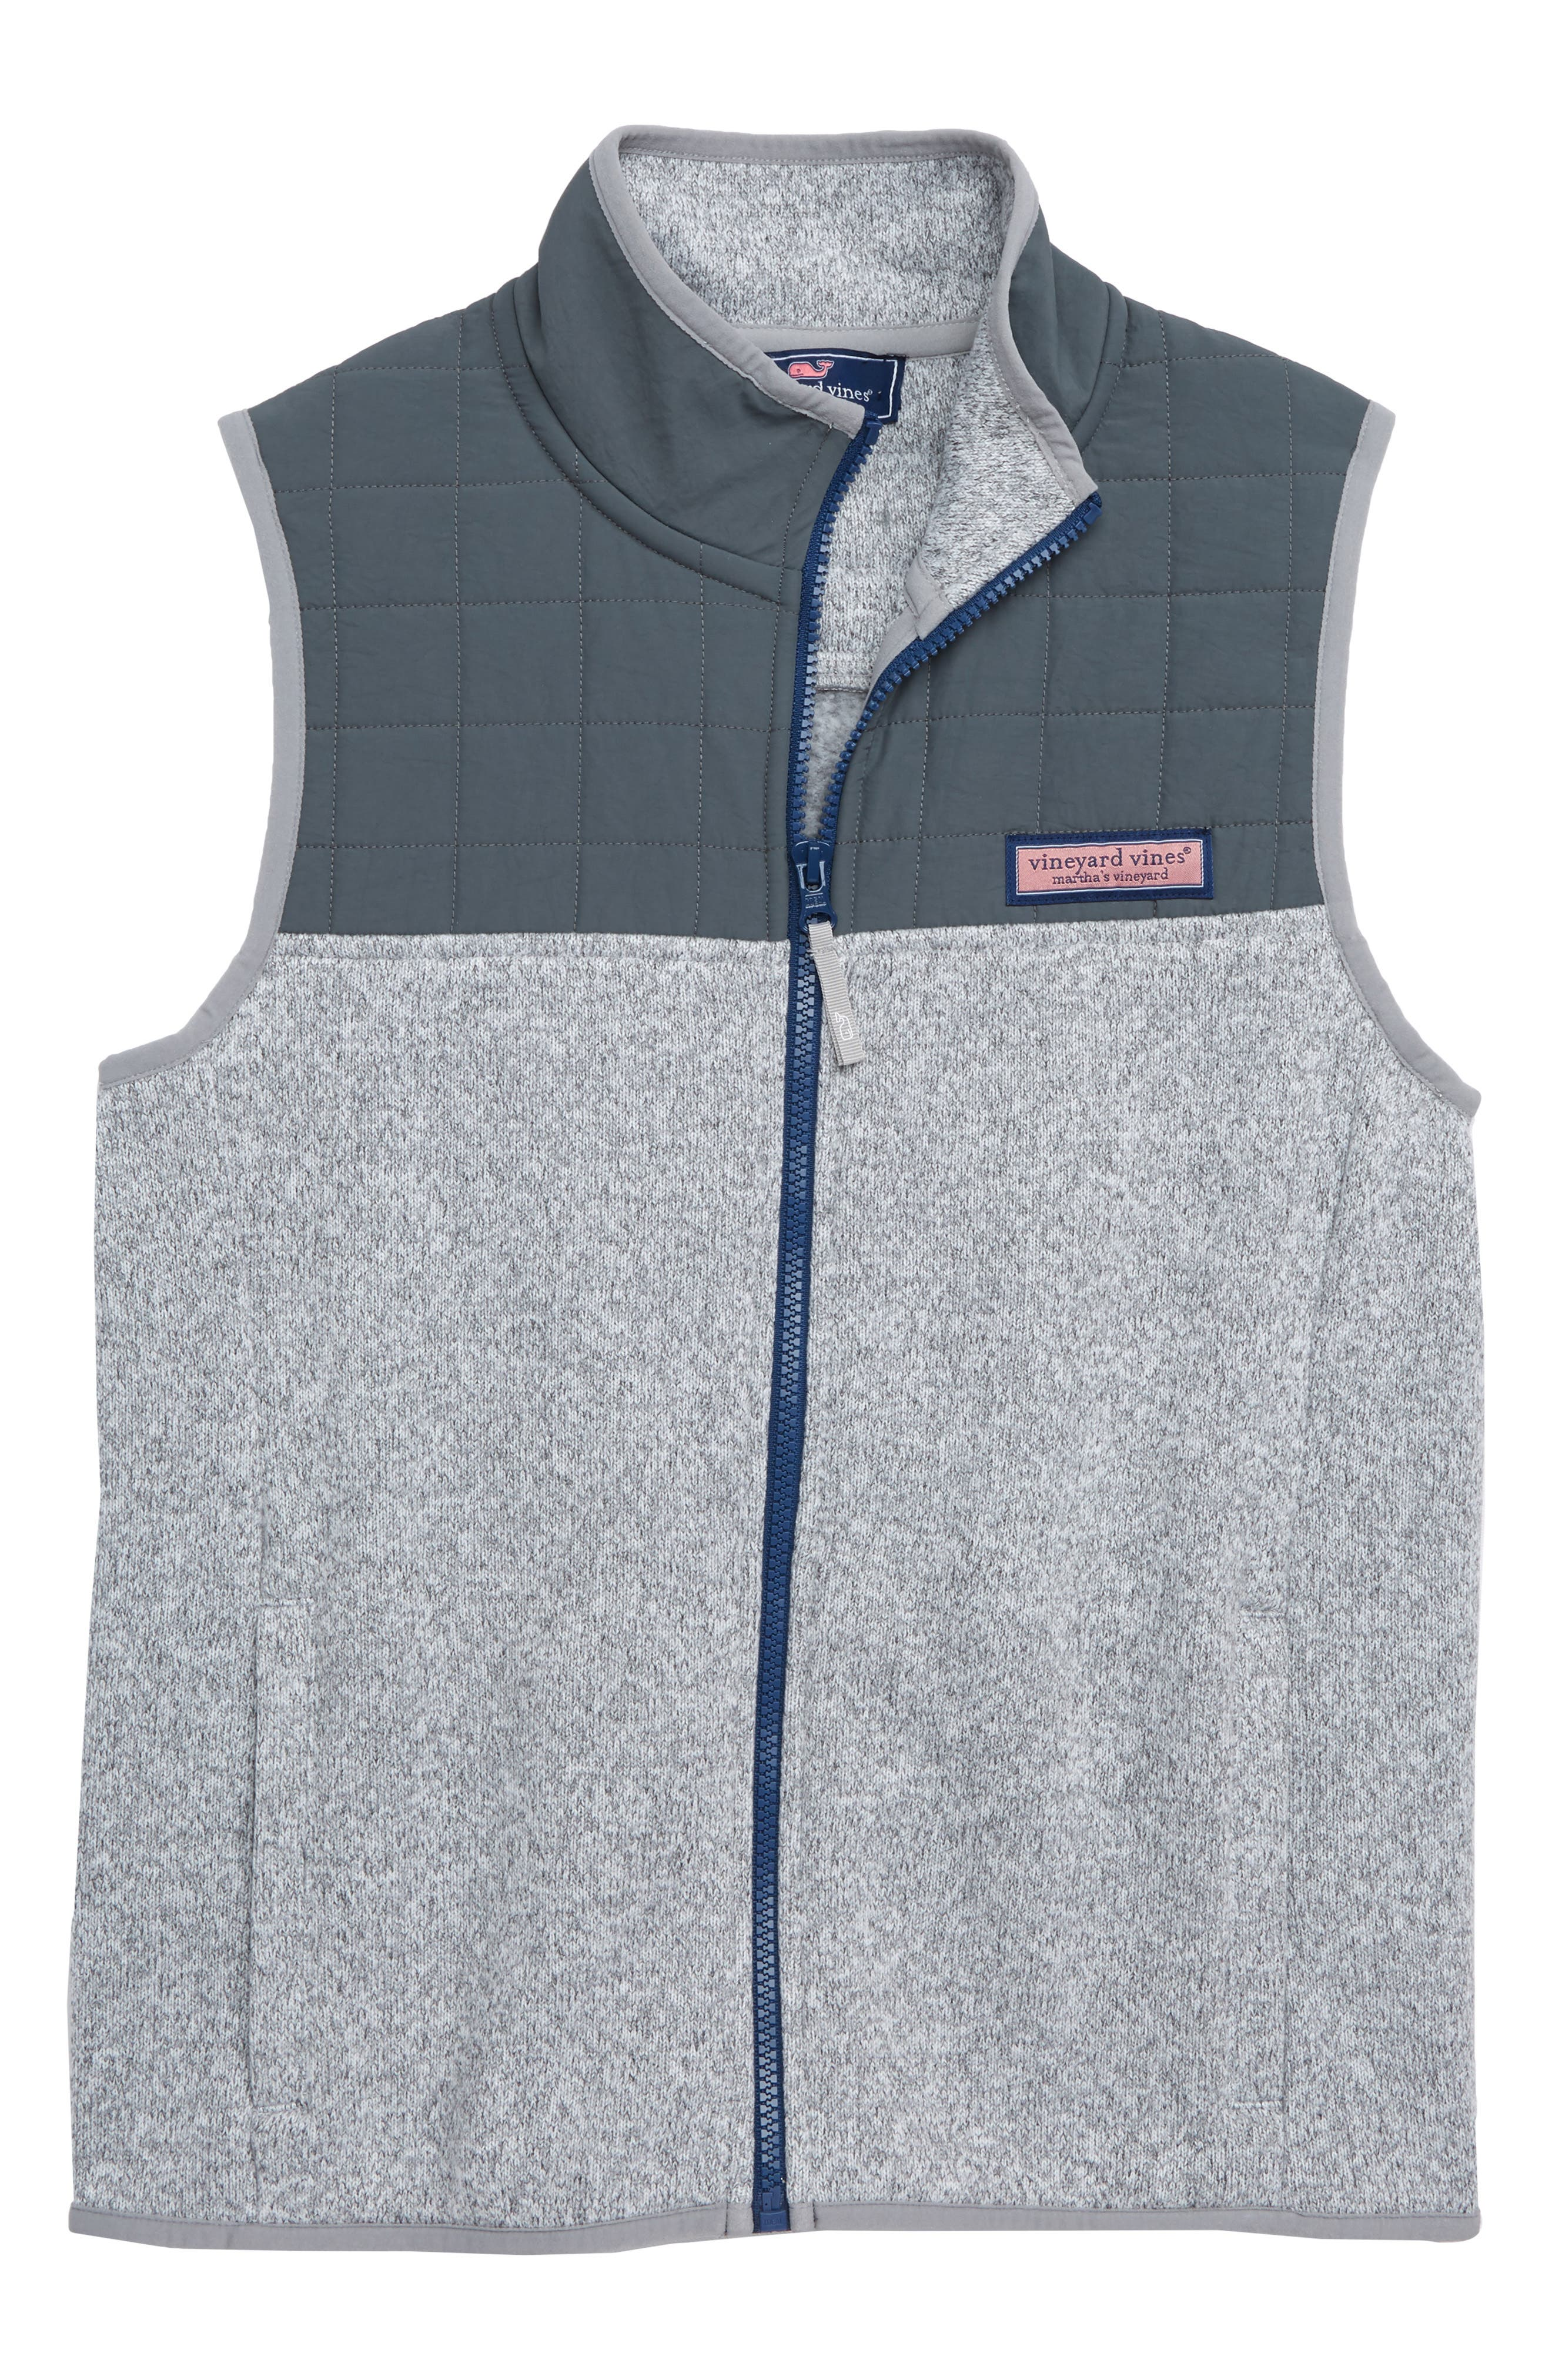 Sweater Fleece Quilted Vest,                             Main thumbnail 1, color,                             GRAY HEATHER